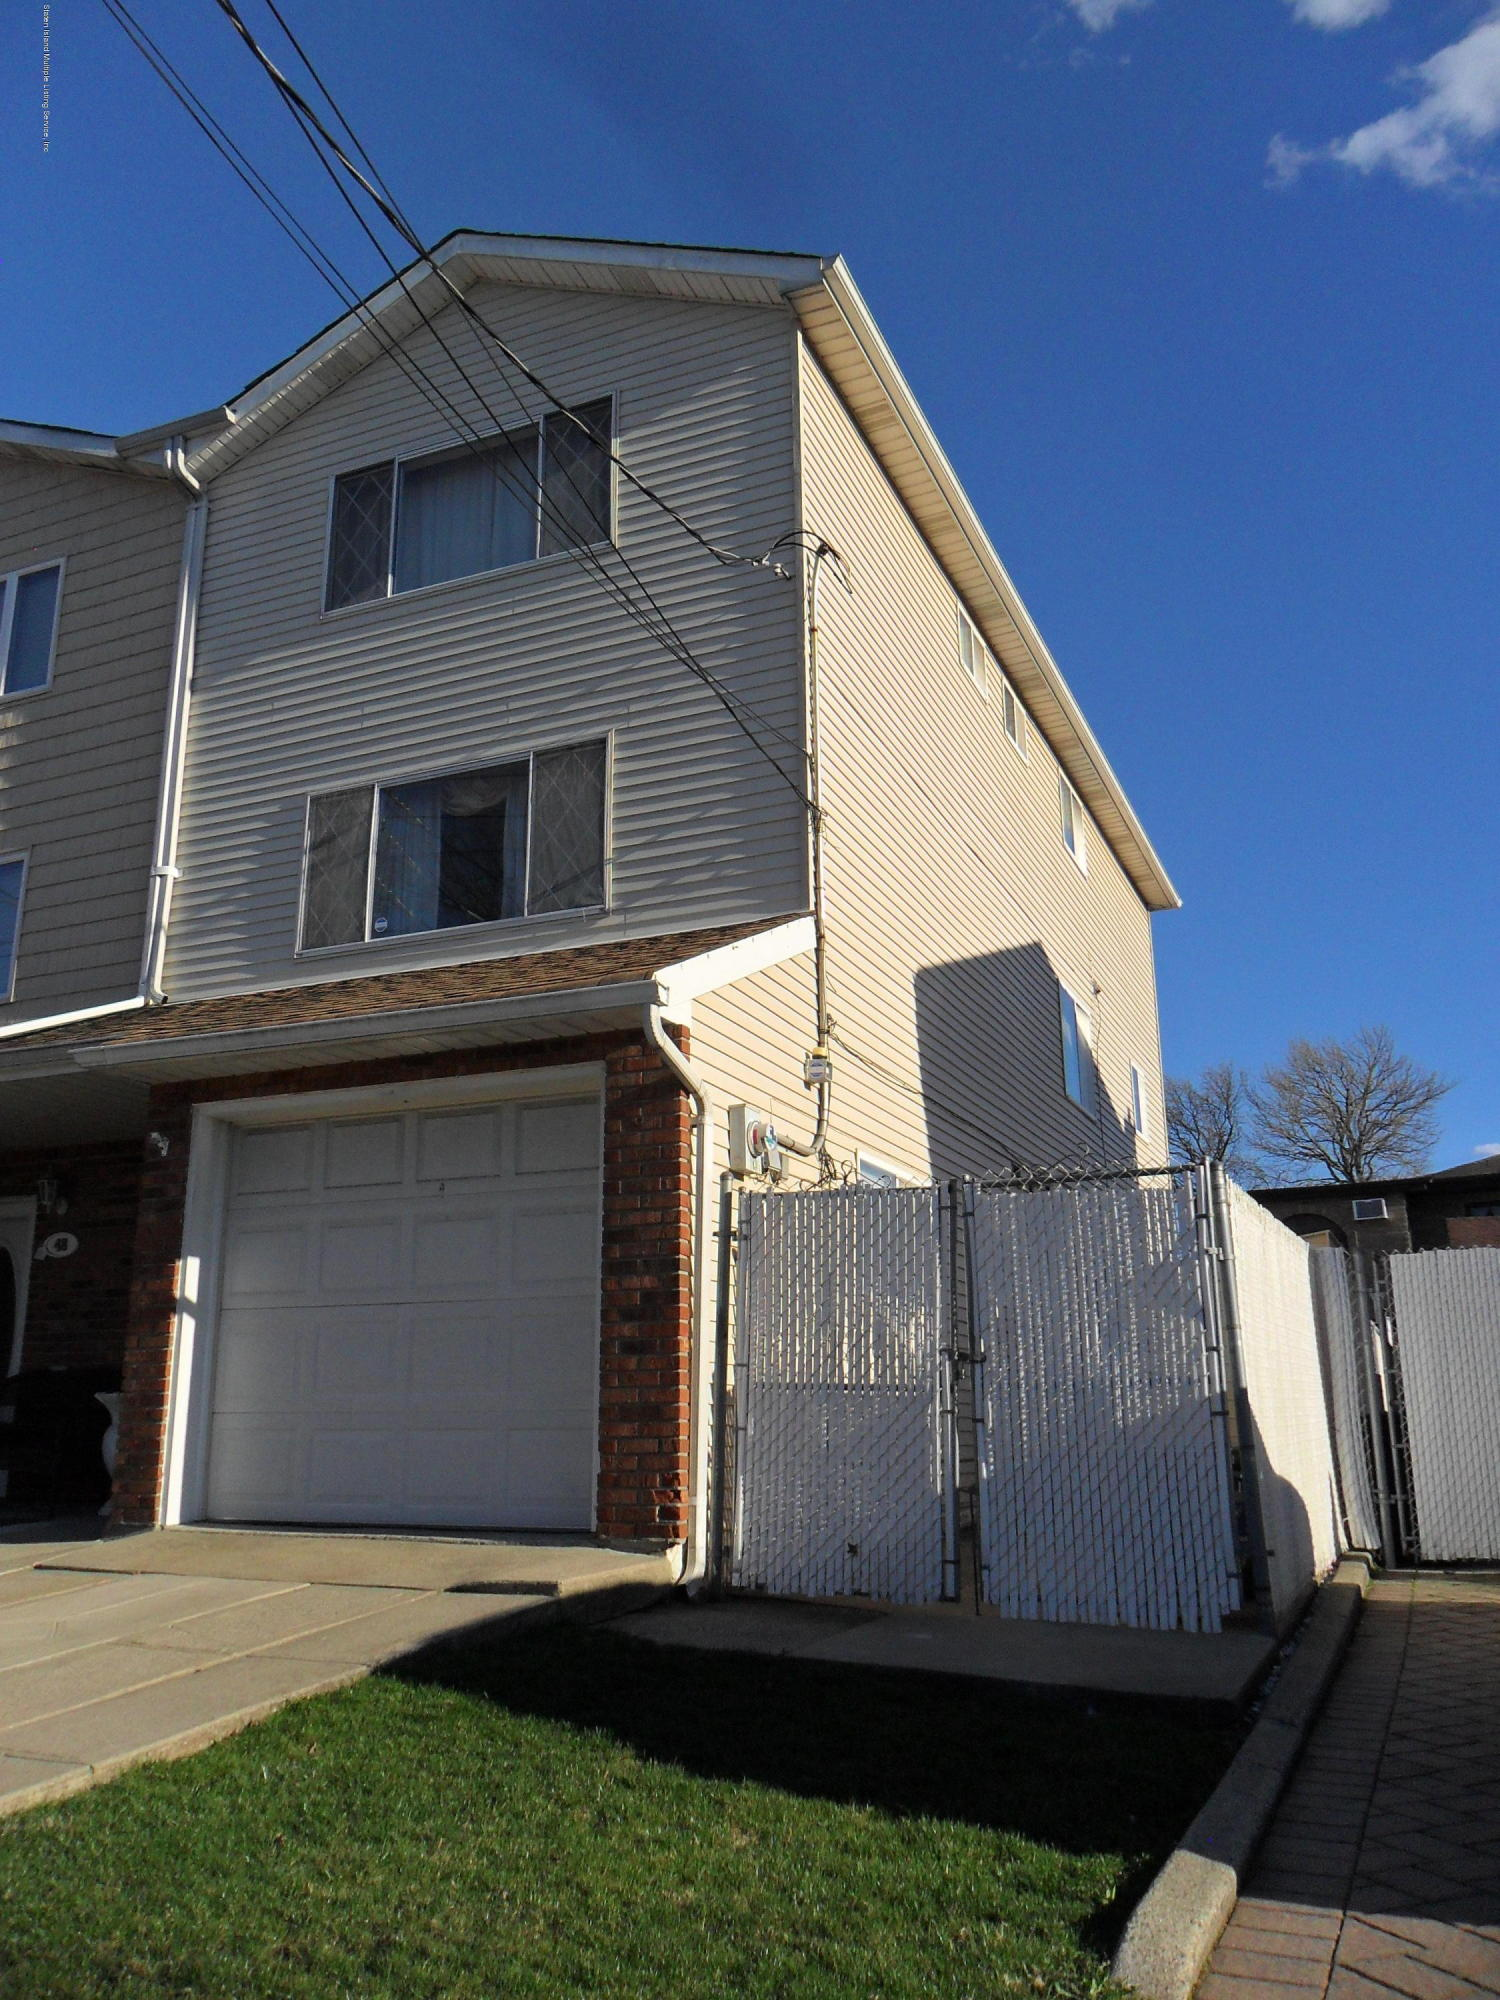 Single Family - Semi-Attached 50 Forest Street  Staten Island, NY 10314, MLS-1127879-3